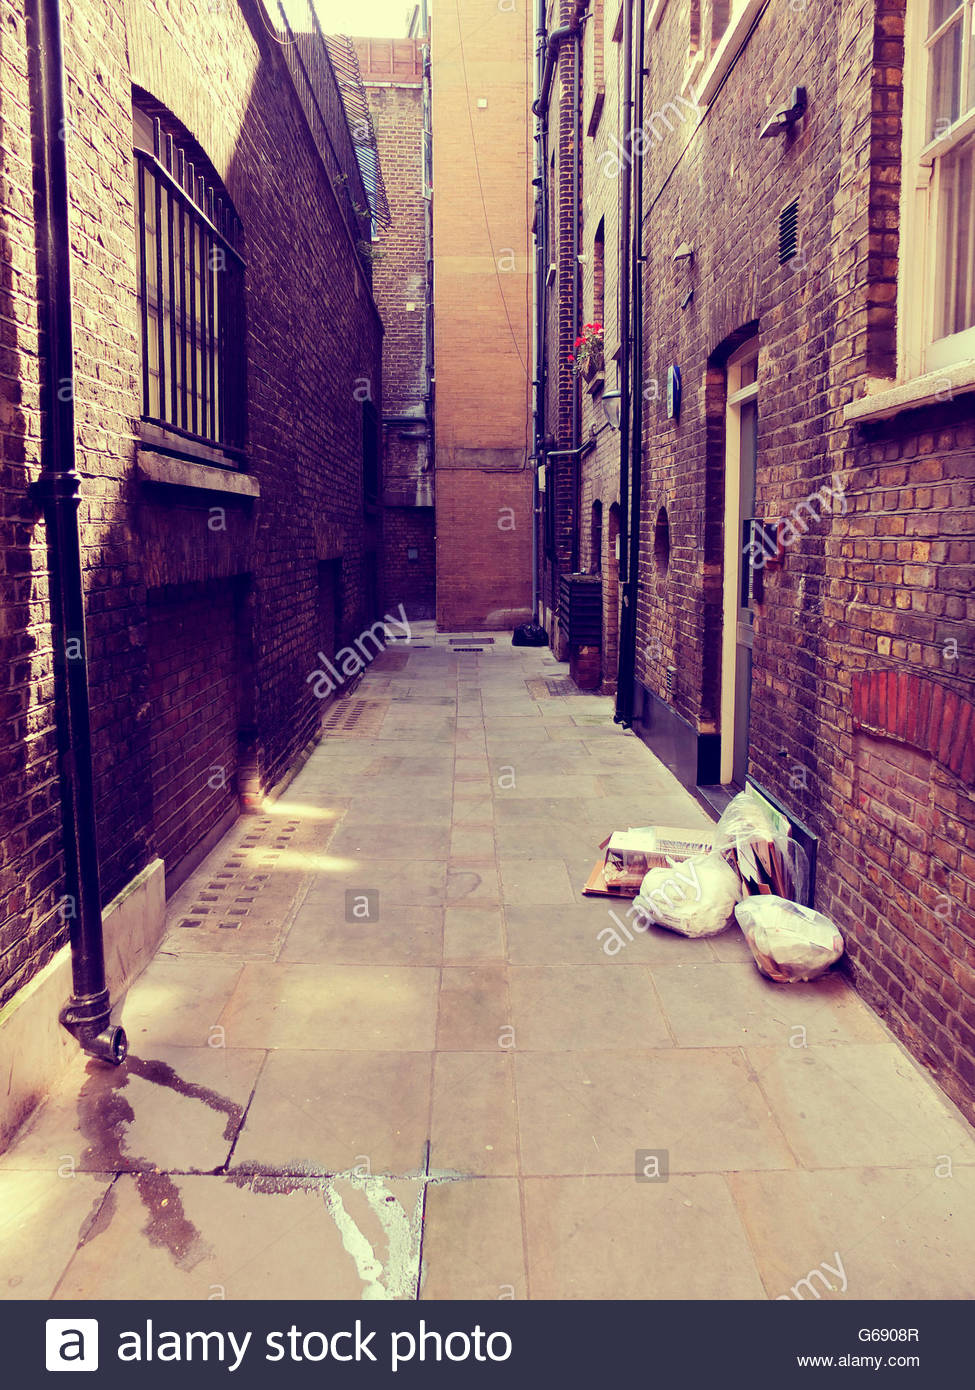 Dirty London alleyway with rubbish sacks - Stock Image